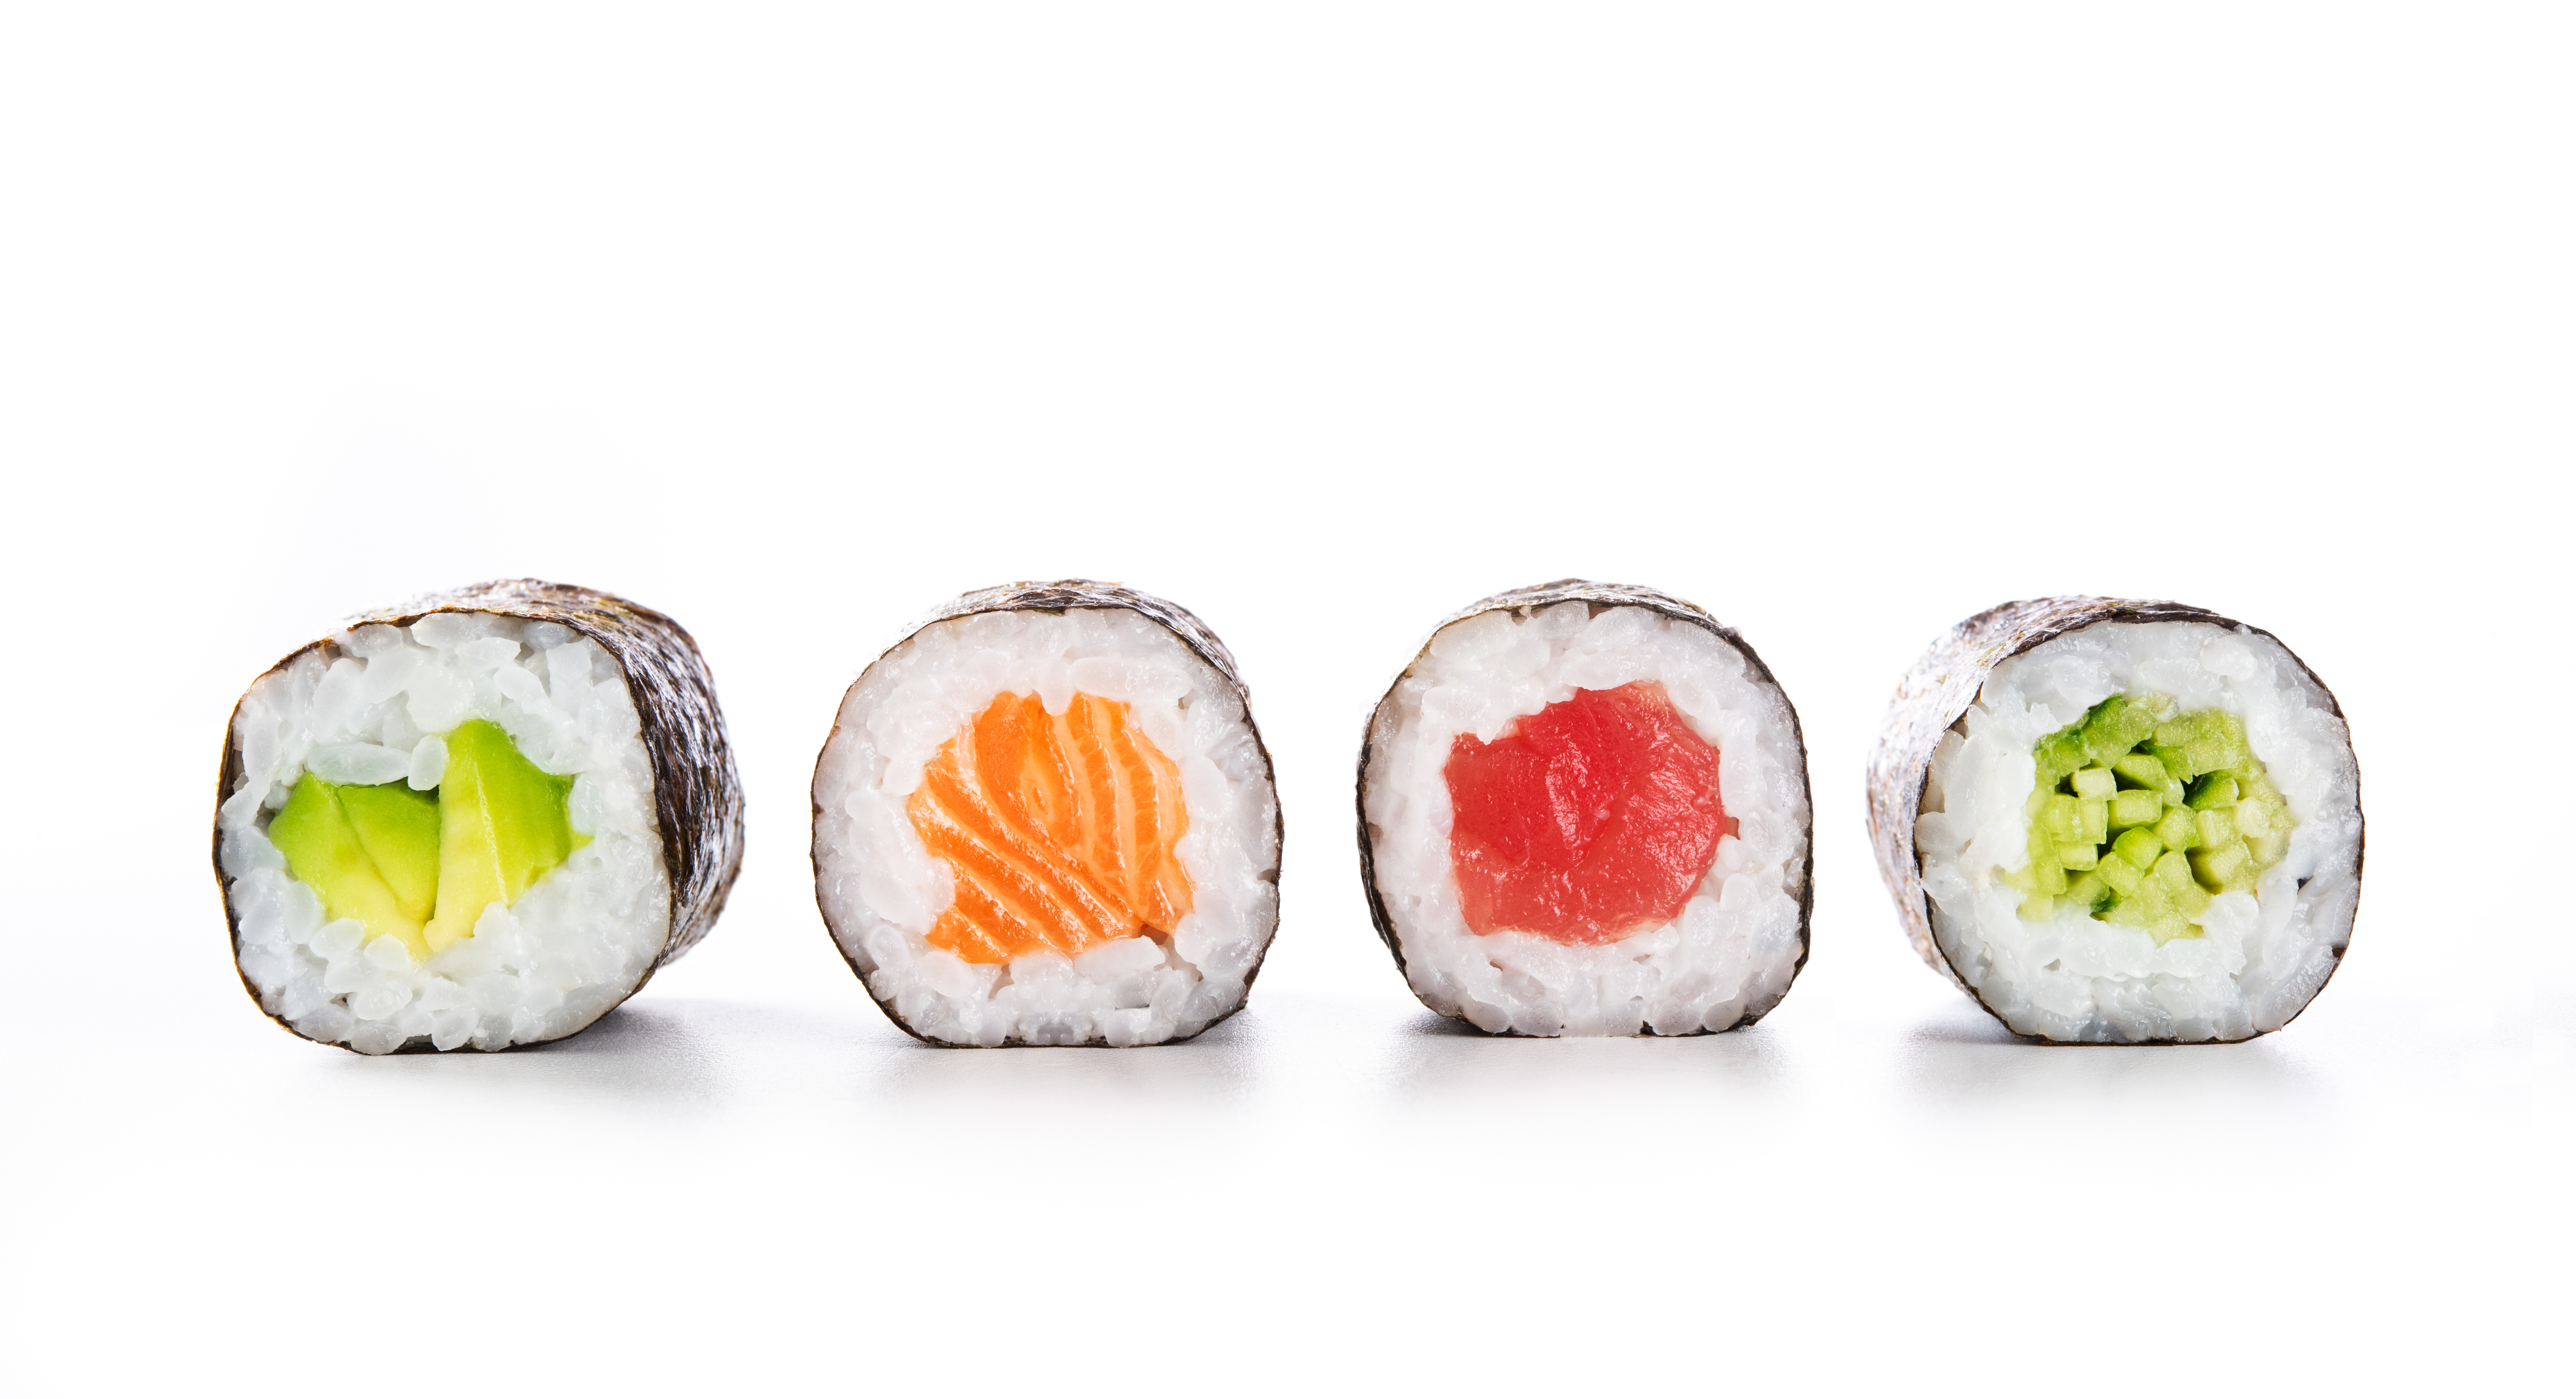 Four maki rolls in a row with salmon, avocado, tuna and cucumber isolated on white background. Fresh hosomaki pieces with rice and nori. Closeup of delicious japanese food with sushi roll.